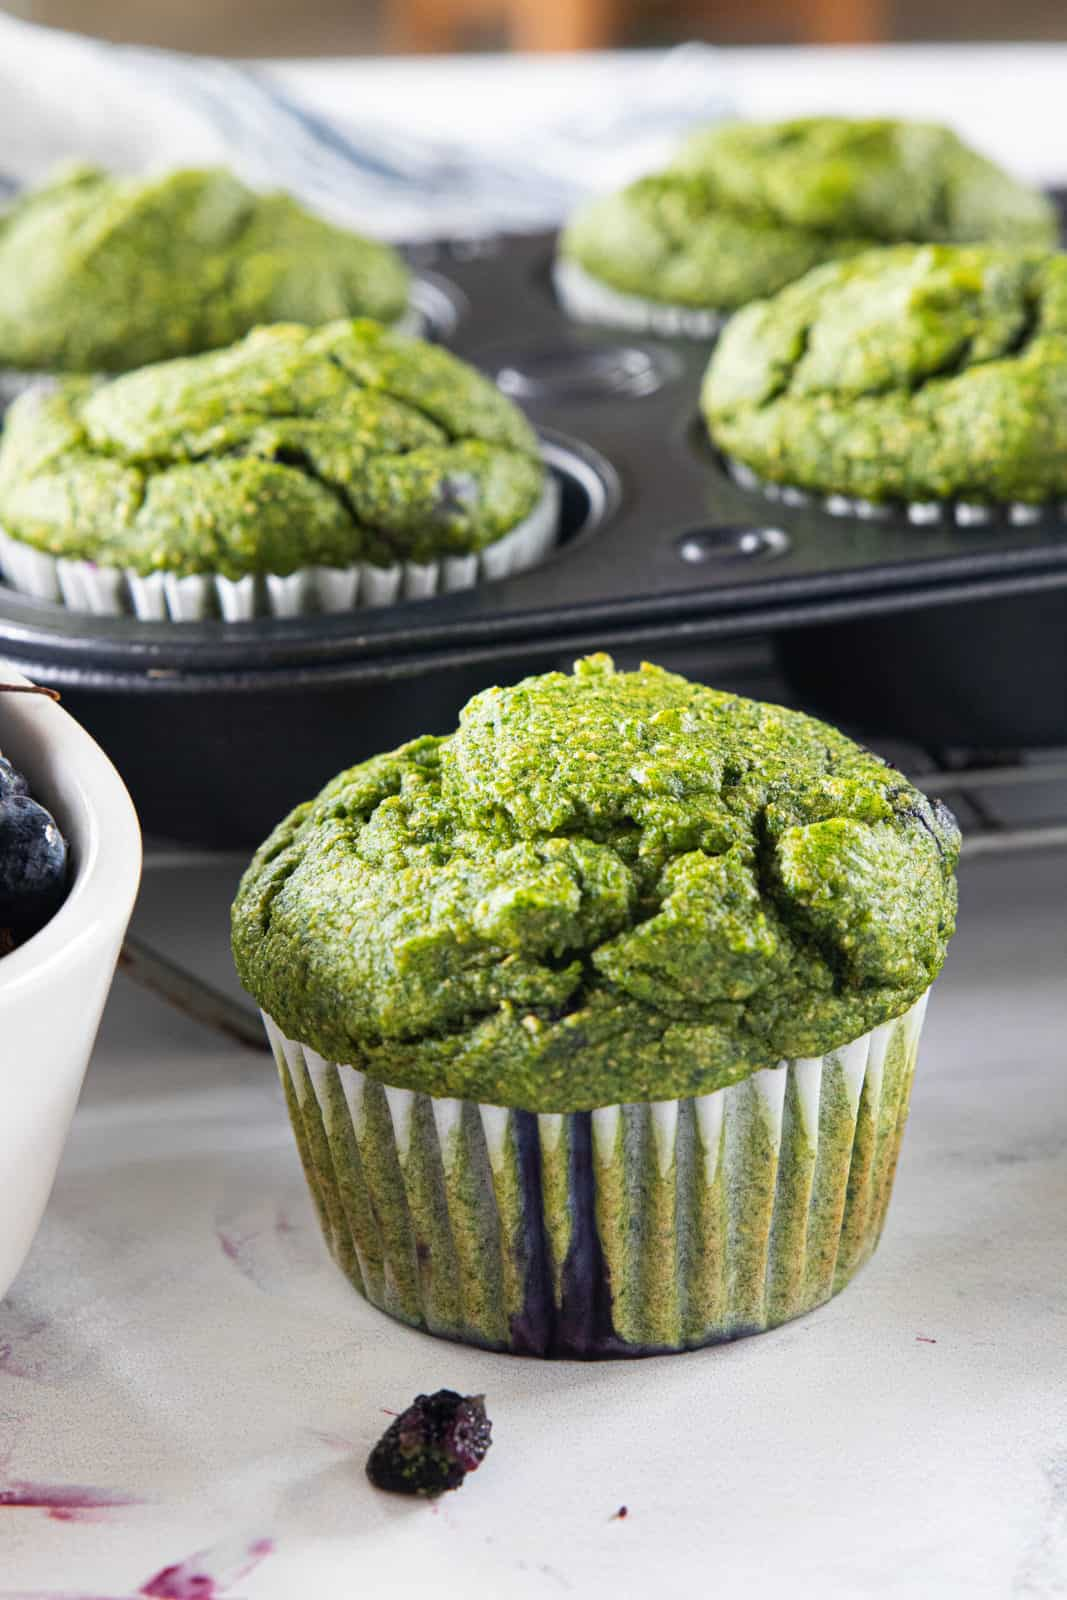 A spinach muffin cooling on a granite countertop with a muffin tin full of spinach muffins next to the single muffin along with a bowl of fresh blueberries.